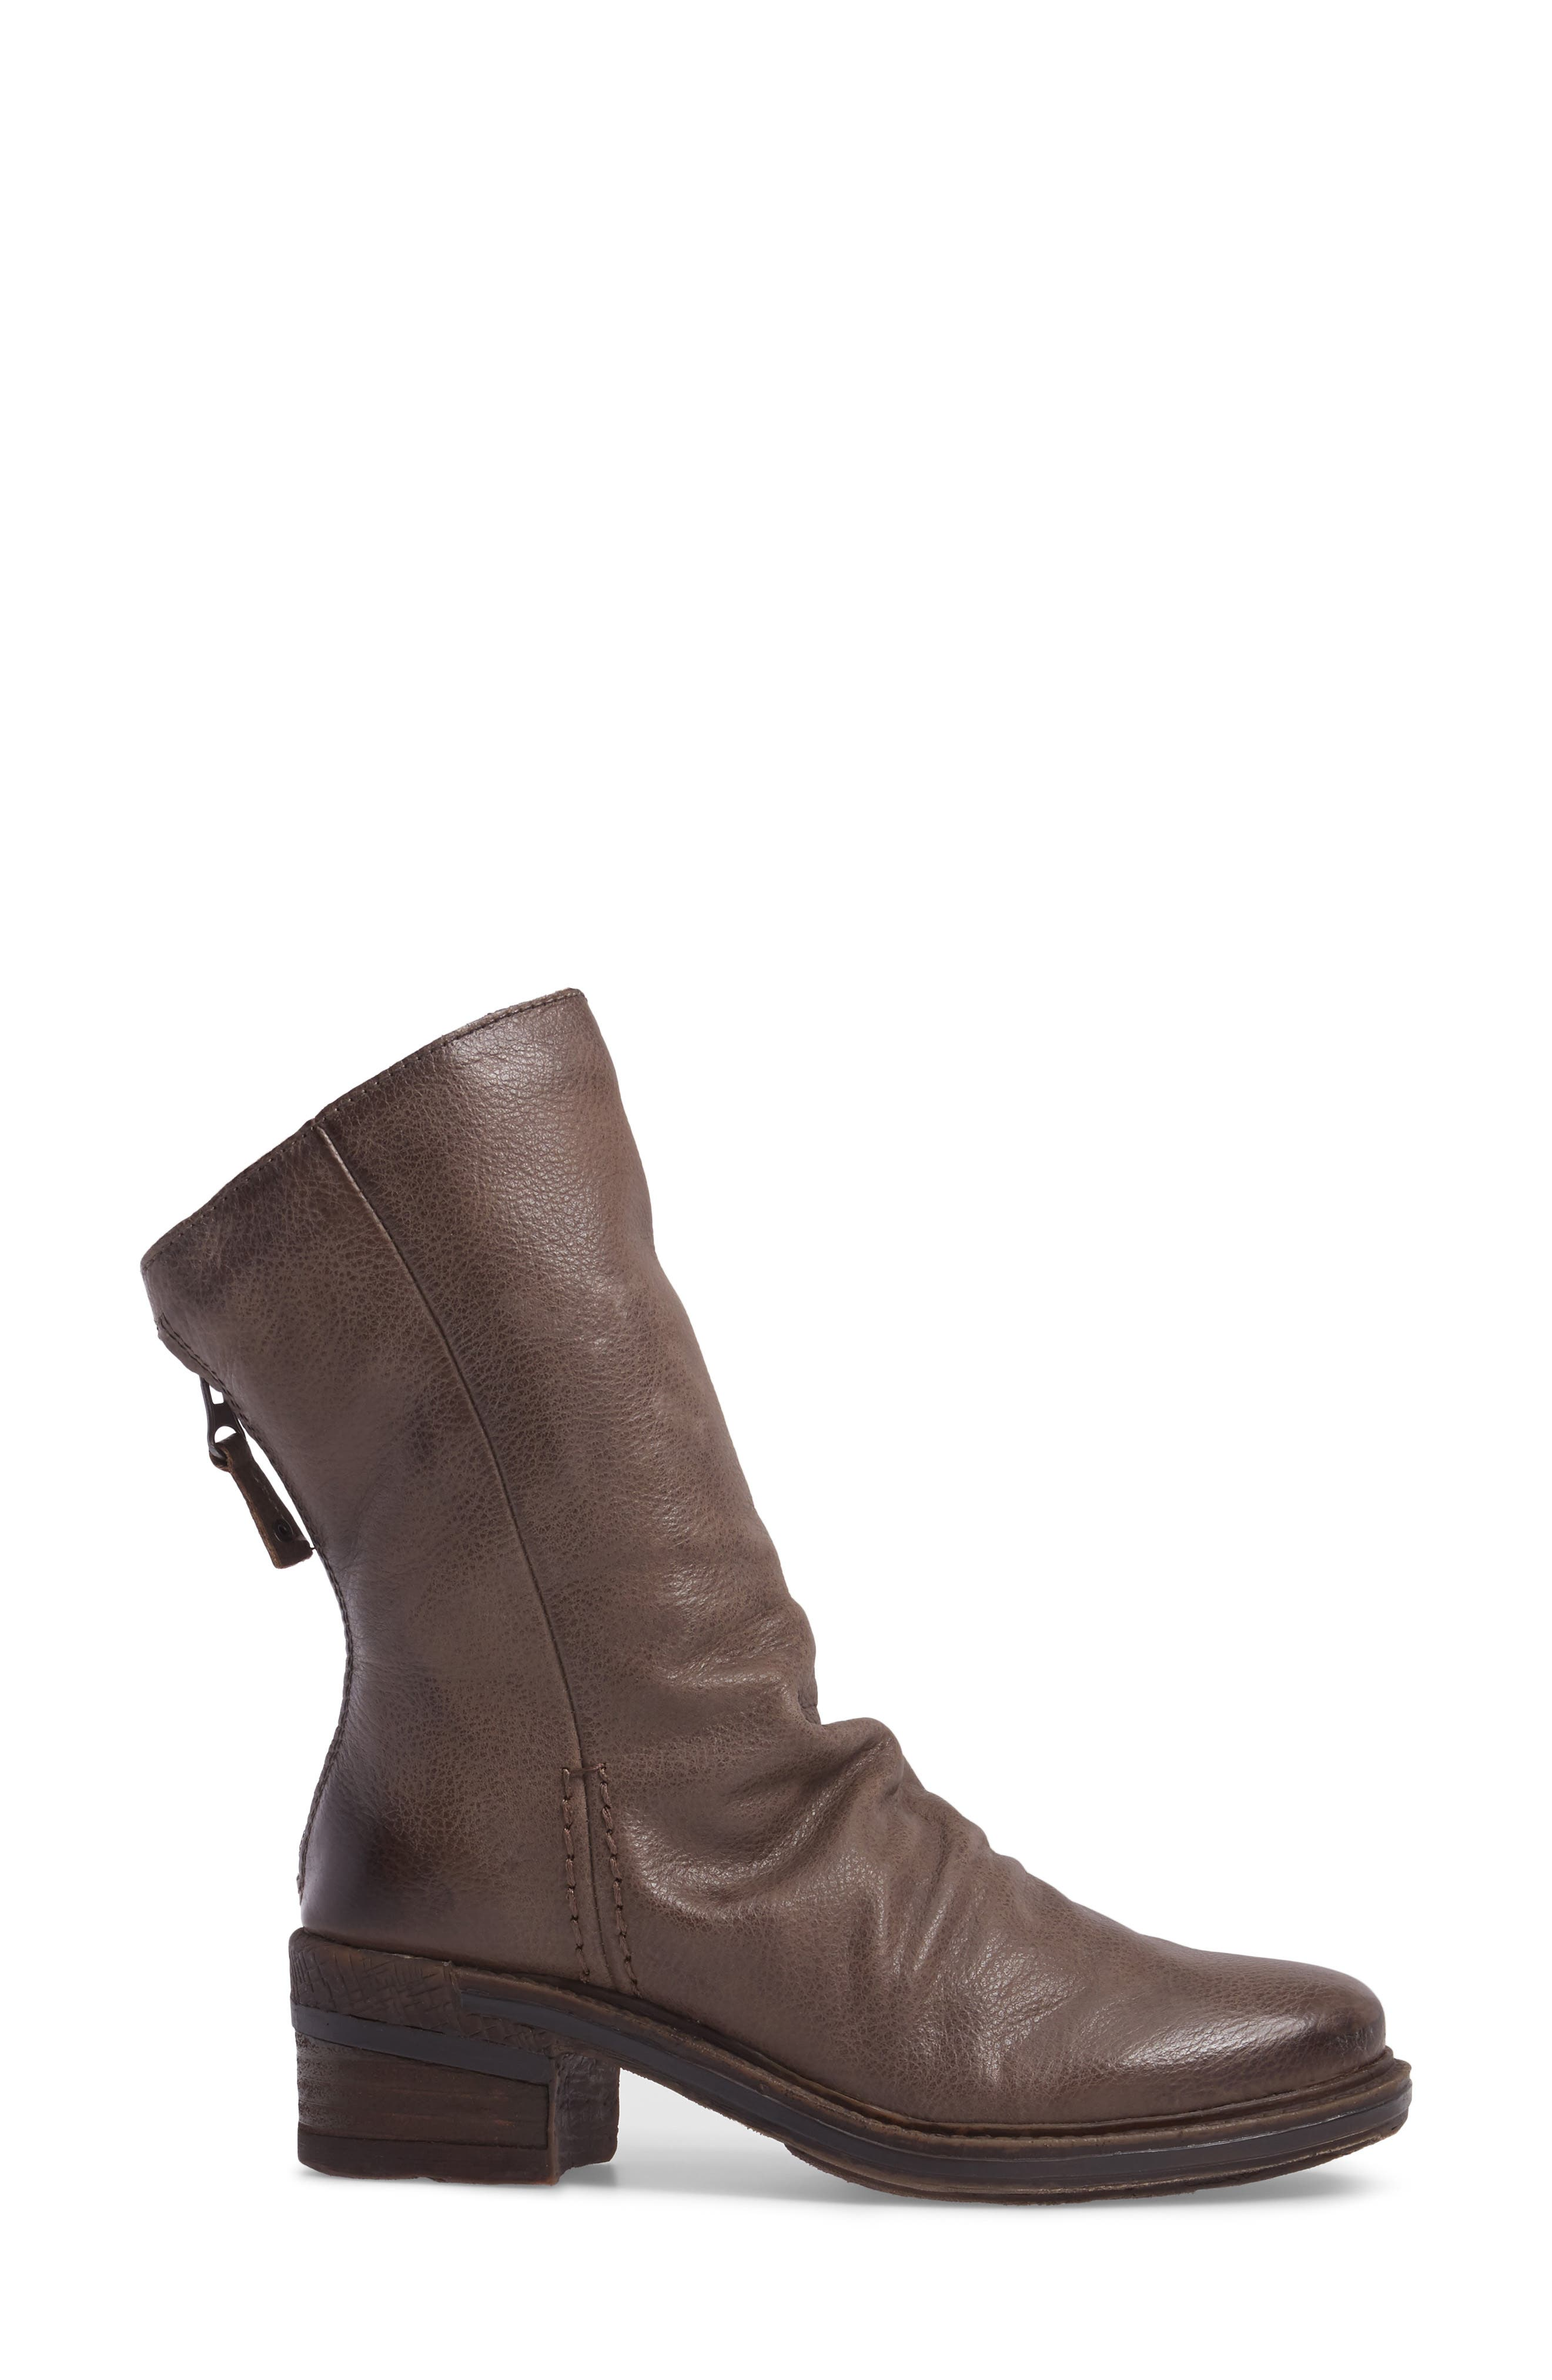 Fernweh Slouchy Bootie,                             Alternate thumbnail 3, color,                             Mint Leather